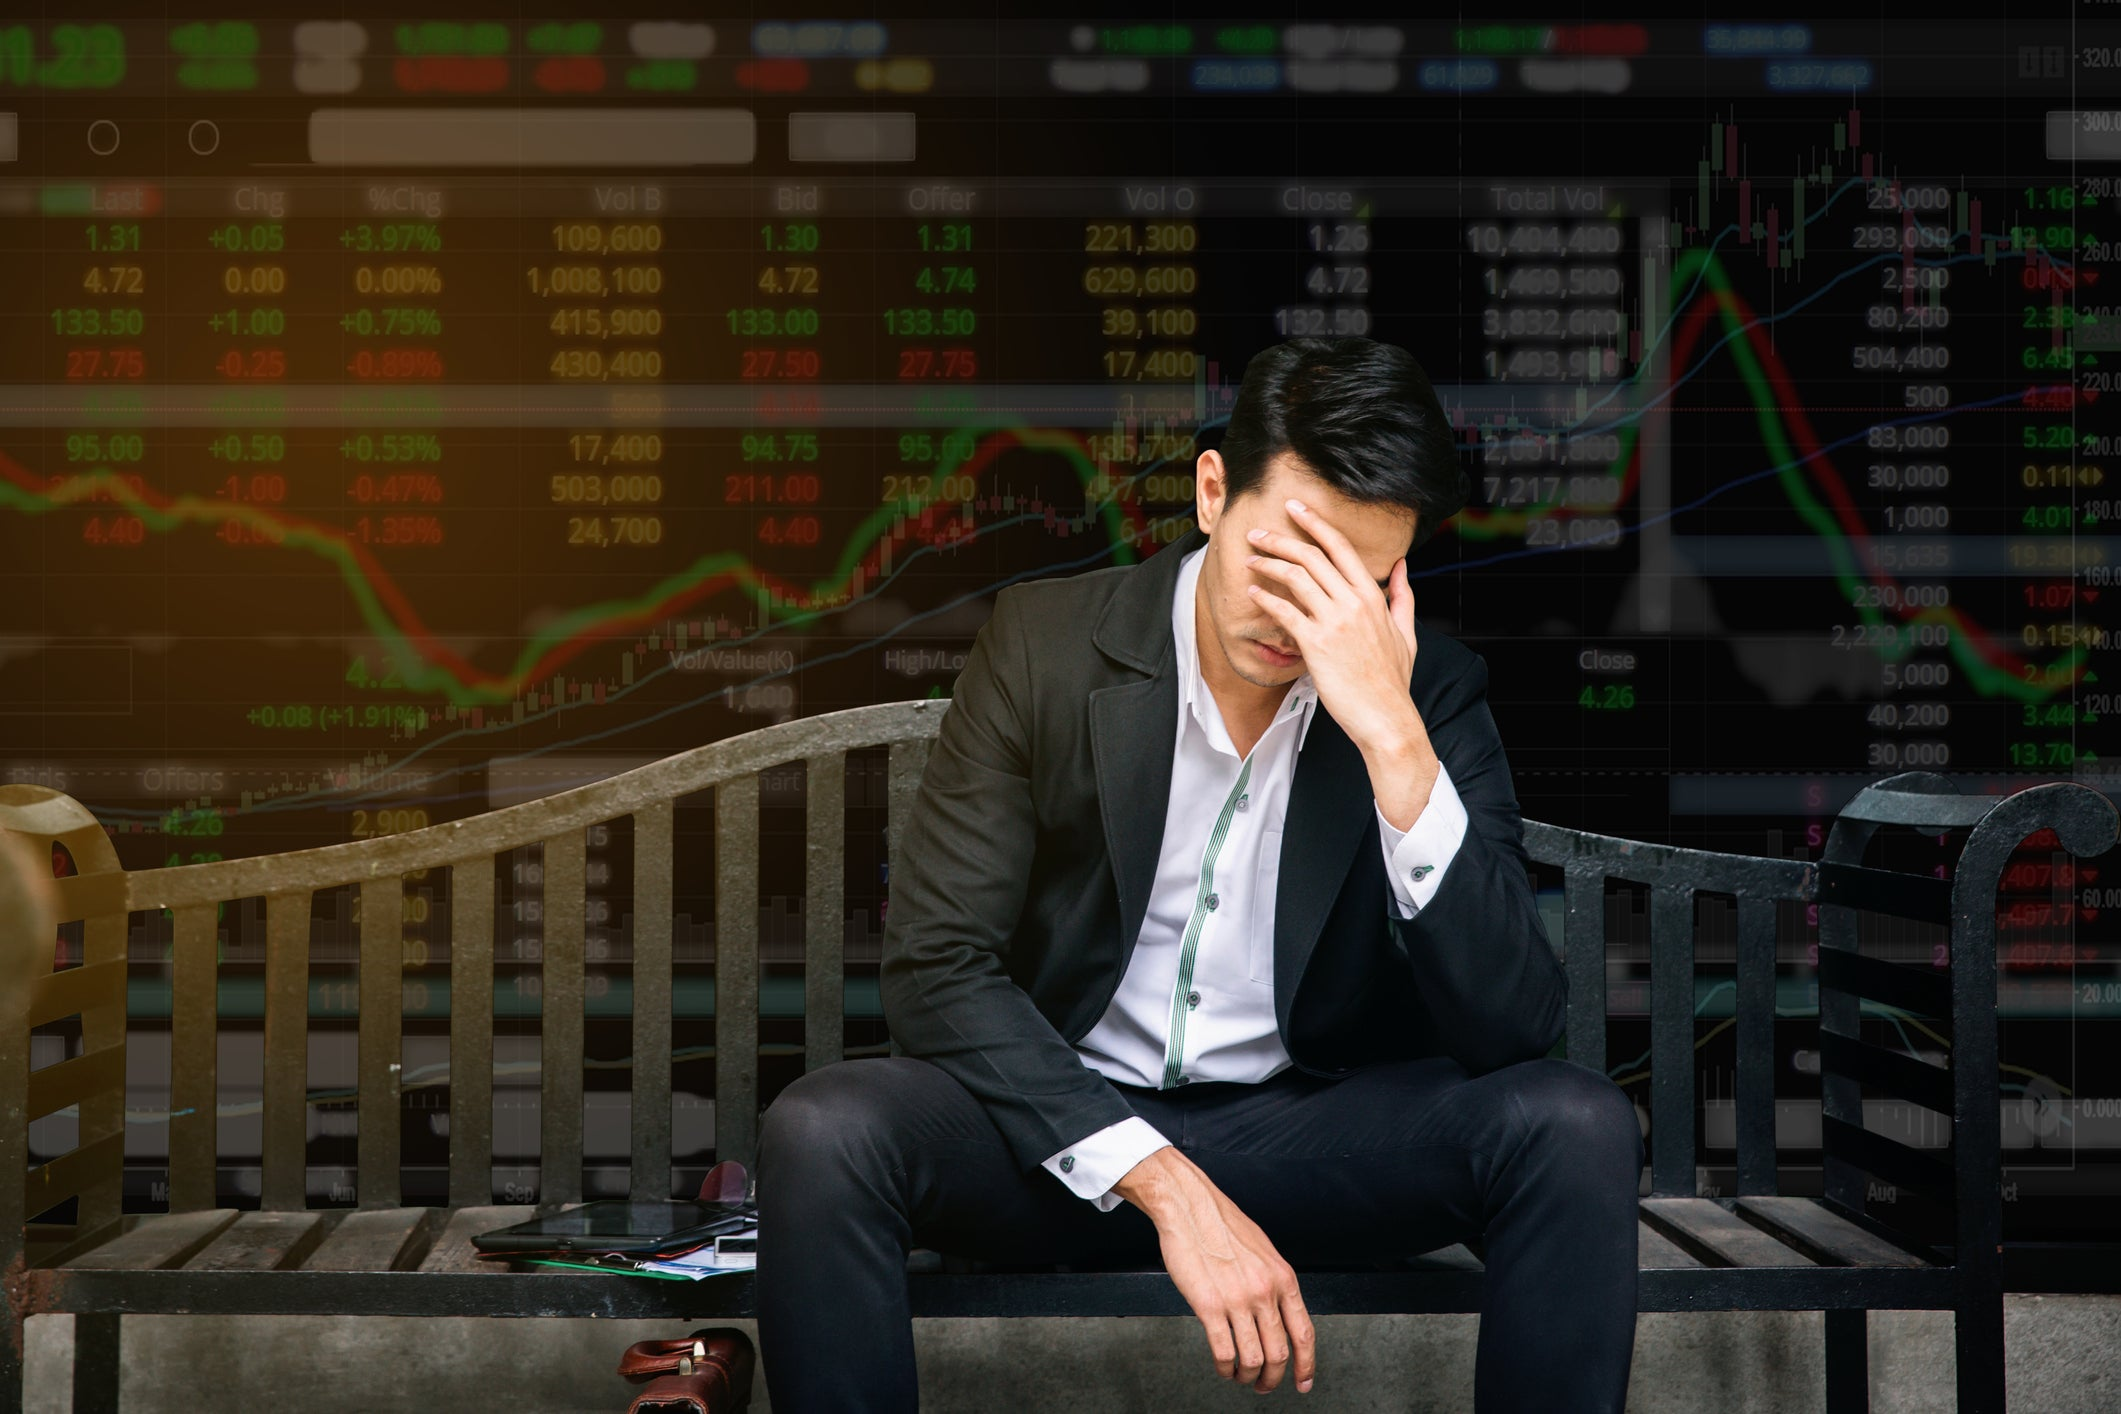 Worried About a 2021 Stock Market Crash? These 3 Stocks Have Staying Power